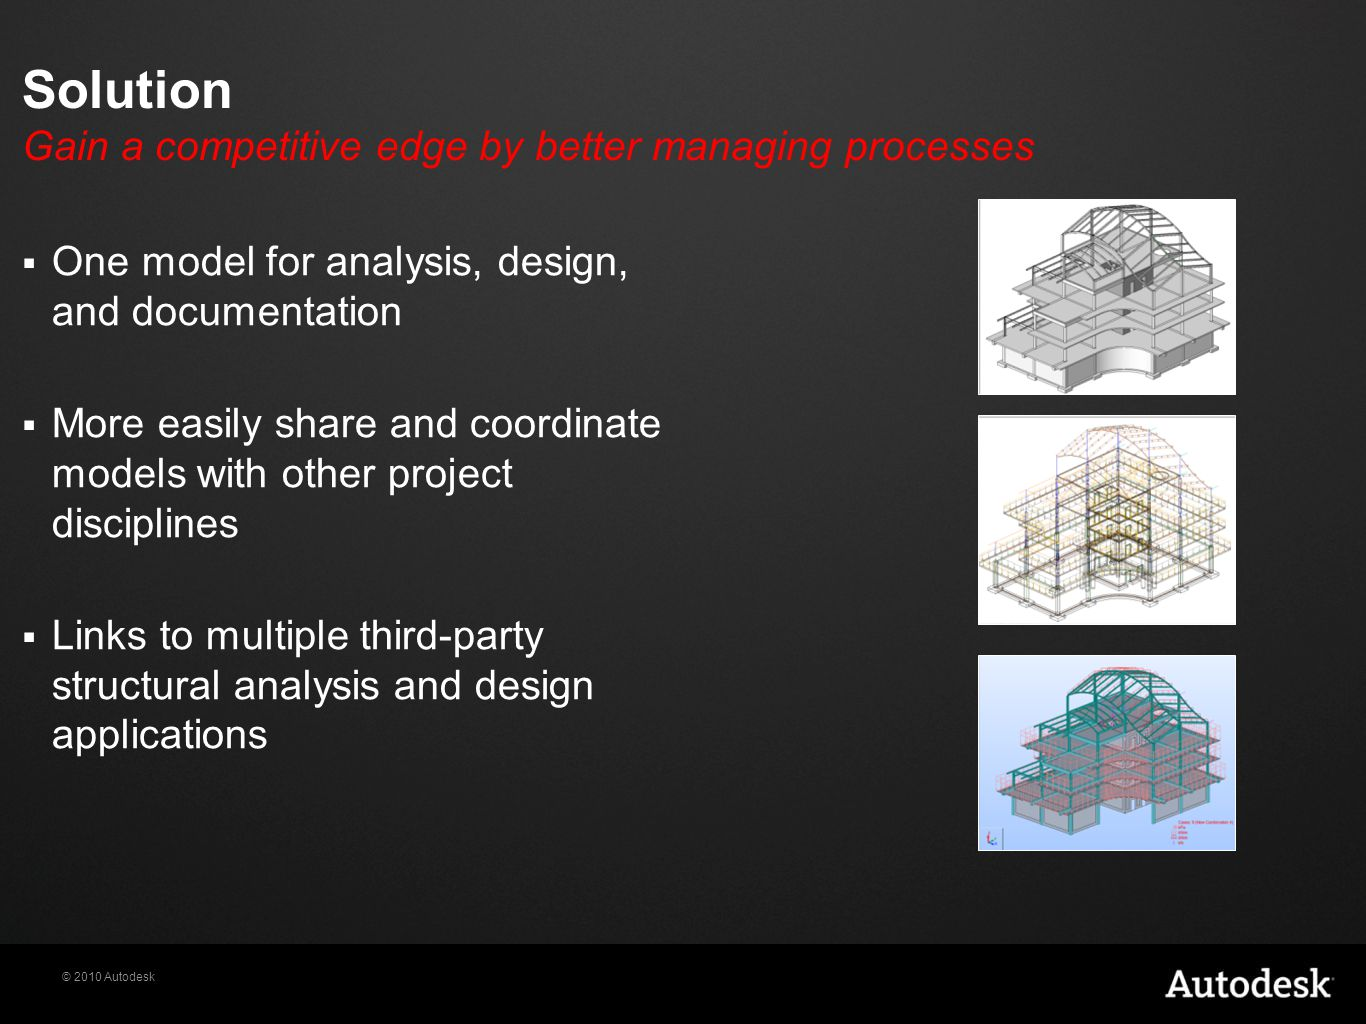 © 2010 Autodesk Solution Gain a competitive edge by better managing processes  One model for analysis, design, and documentation  More easily share and coordinate models with other project disciplines  Links to multiple third-party structural analysis and design applications